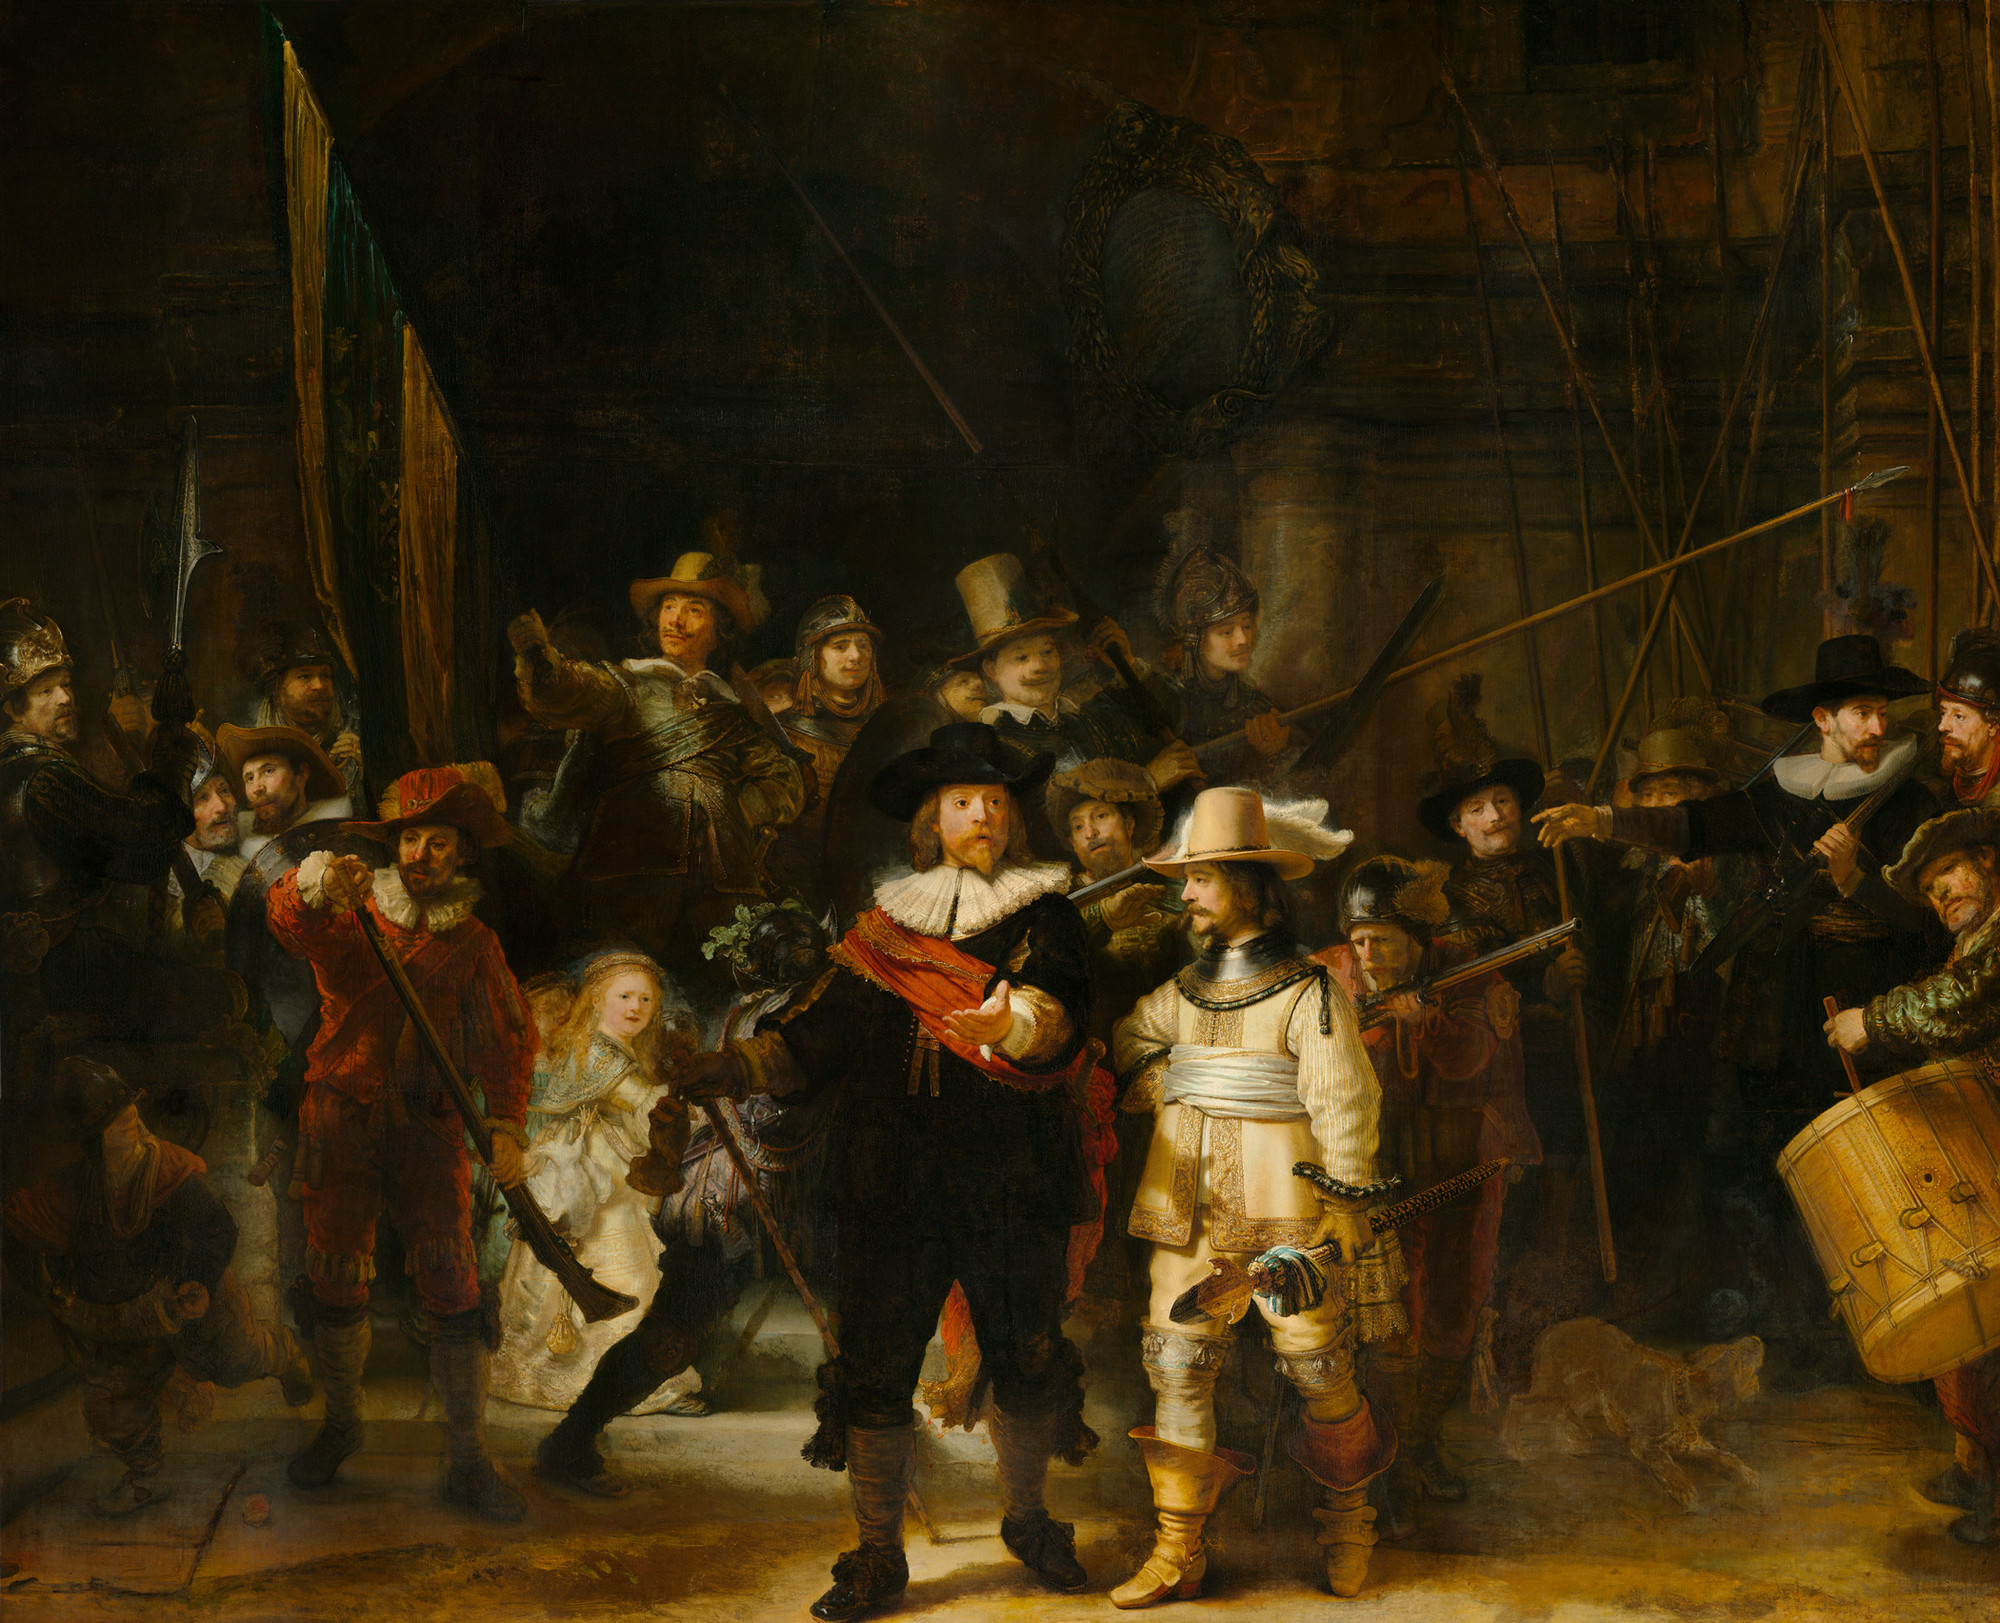 The Night Watch / Rembrandt van Rijn, 1642. Image Courtesy of Rijksmuseum